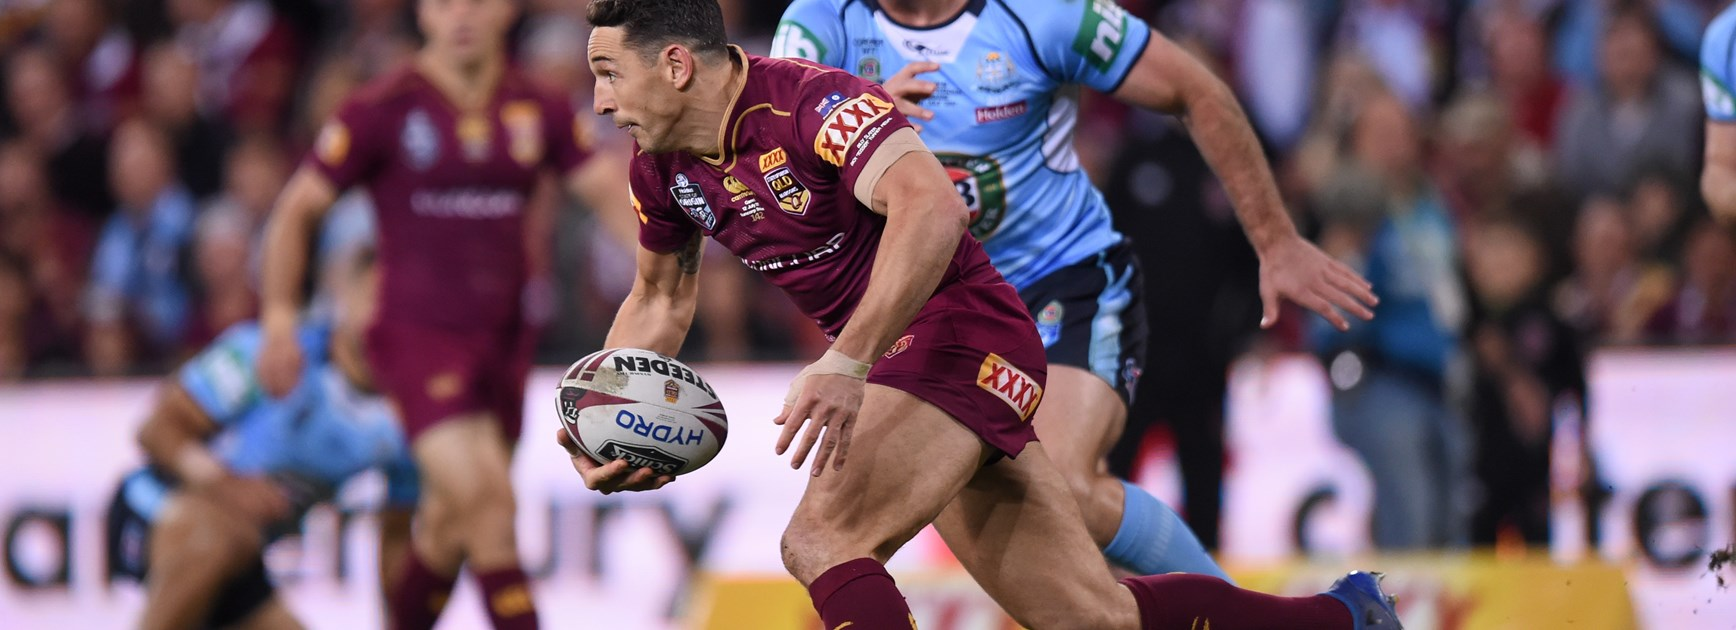 Billy Slater to play 300th game